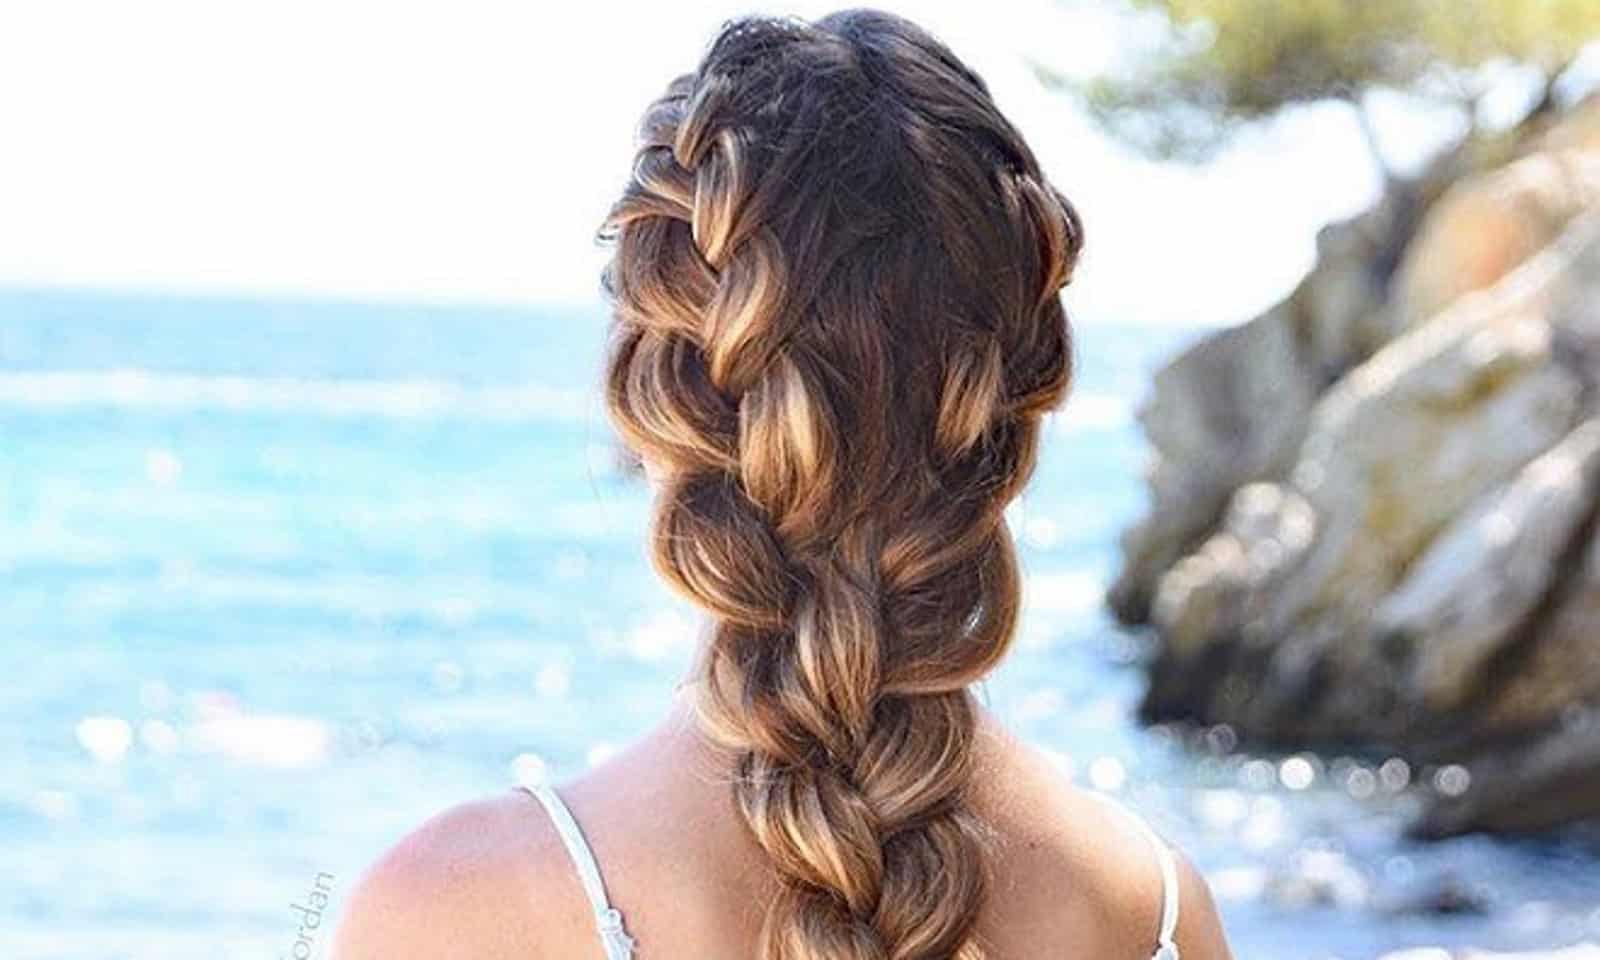 21-French-Braid-Hairstyles-that-are-Tre's-Flawless-19-1